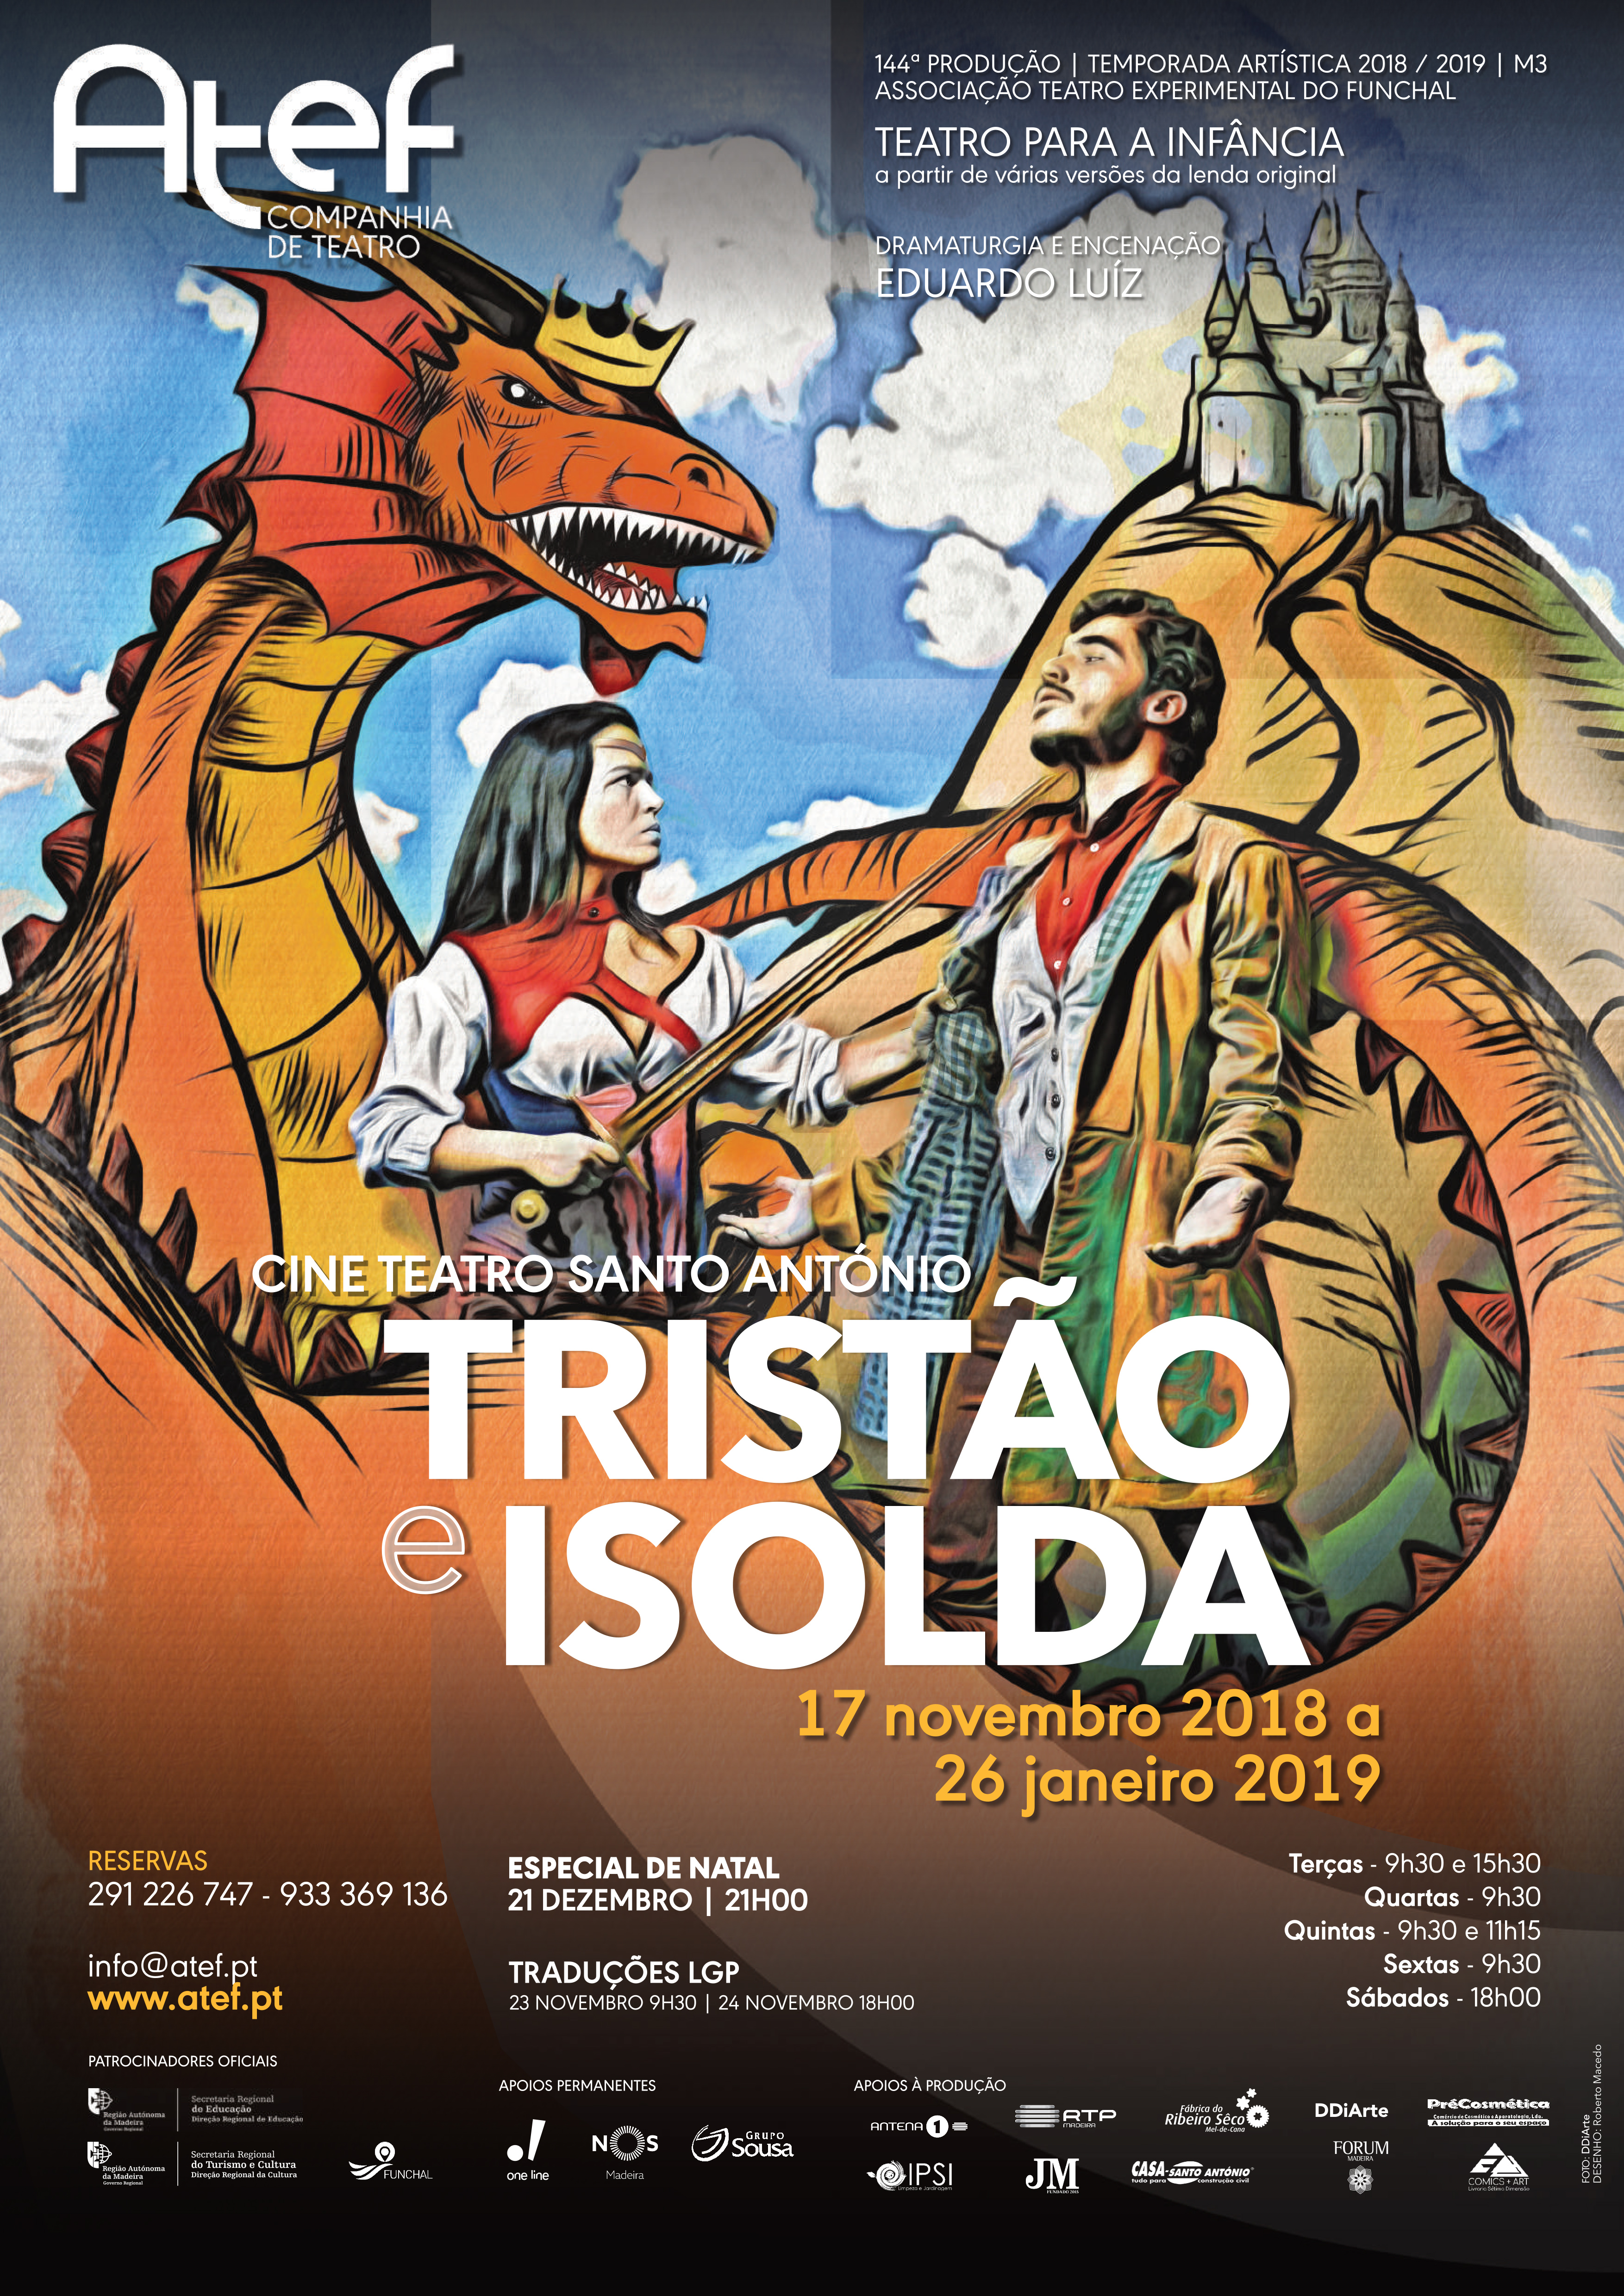 Cartaz Triatão e Isolda